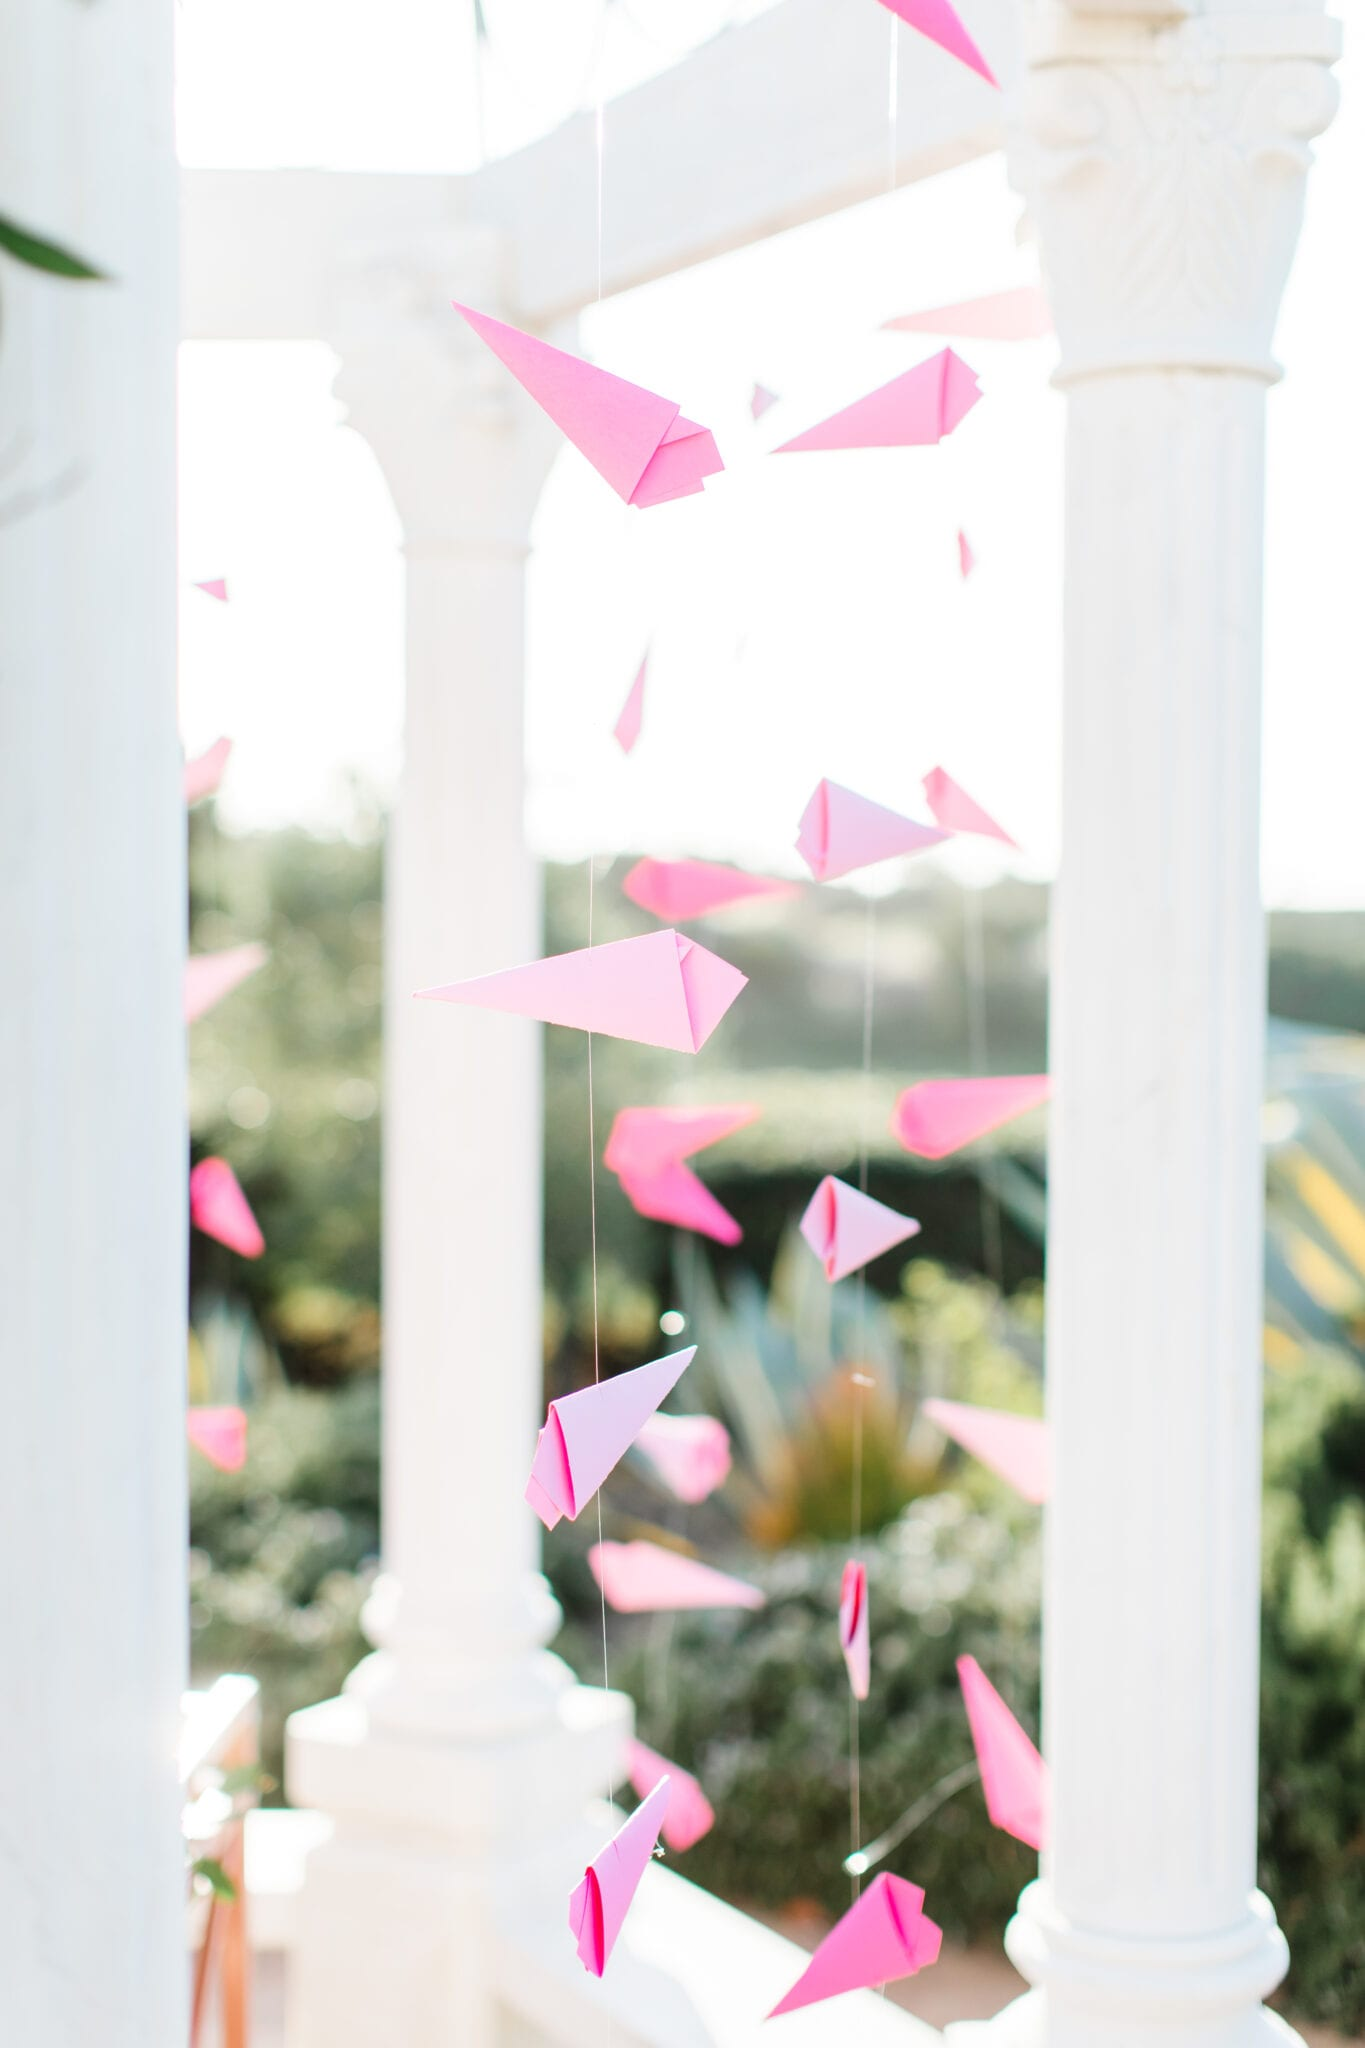 pink paper airplanes